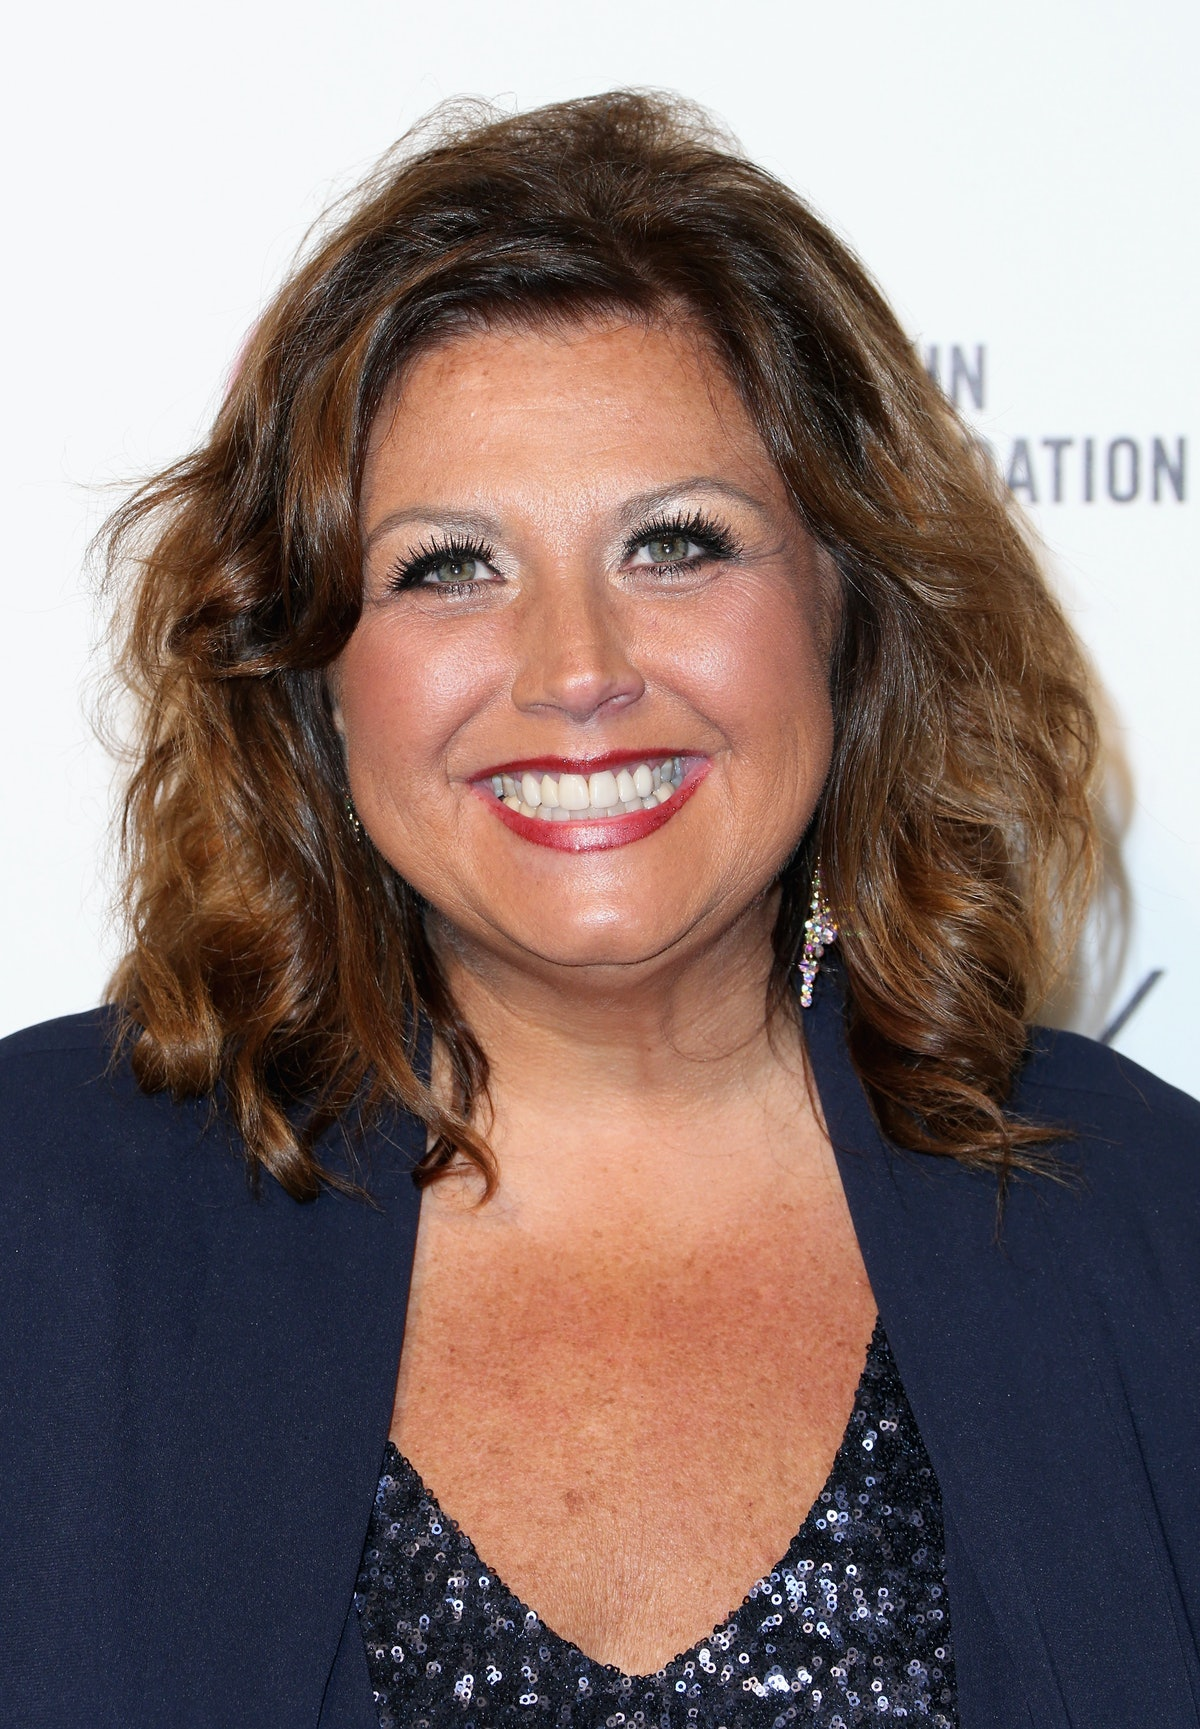 Abby lee miller early photos 4pics 1 word-two blue doors, internet, @mailbox, lady talking to